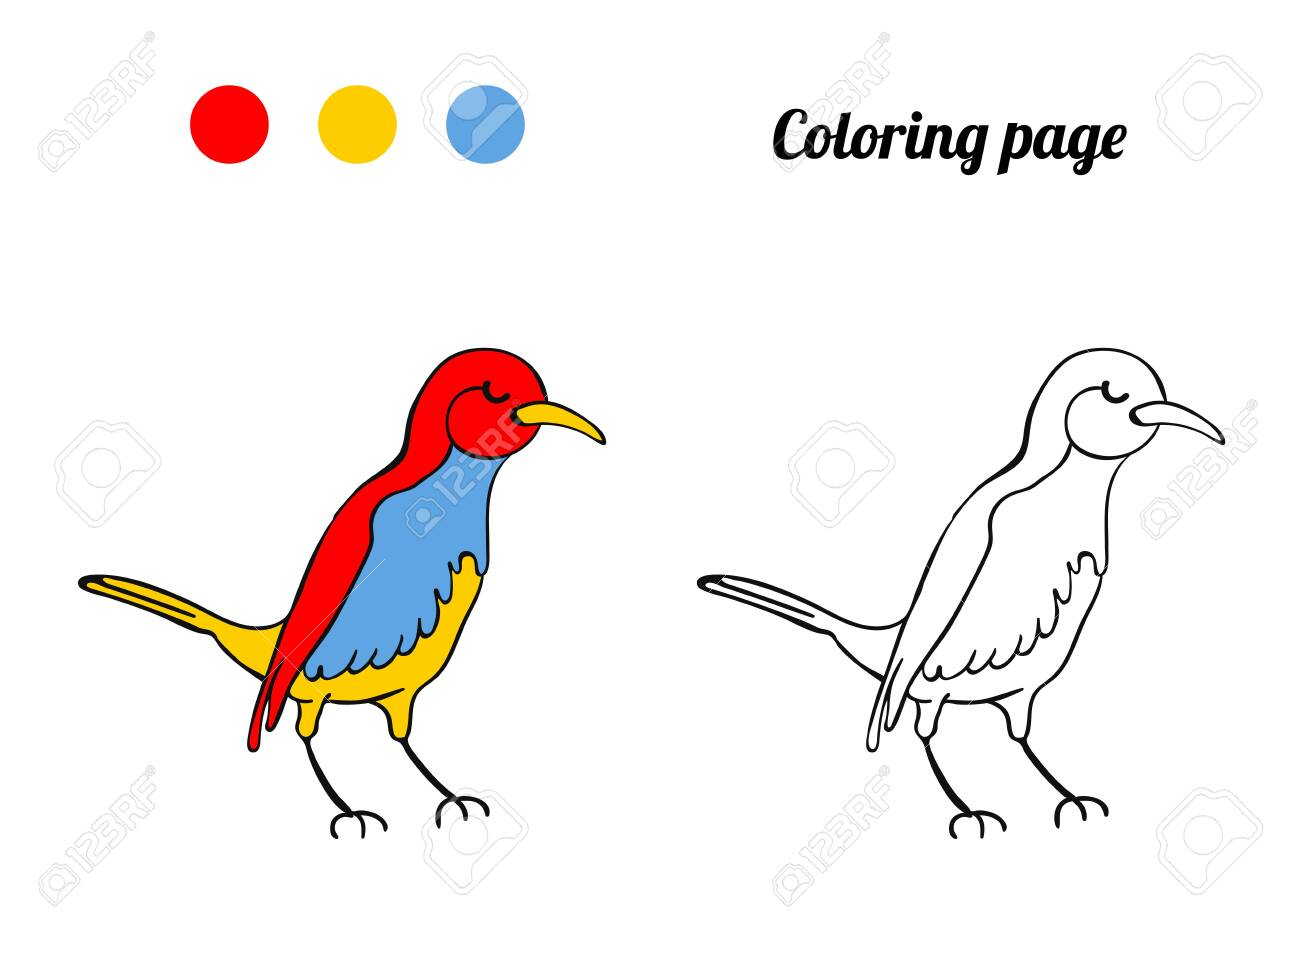 Illustration Of Cute Bird Coloring Page Or Book For Baby Royalty Free Cliparts Vectors And Stock Illustration Image 135215195